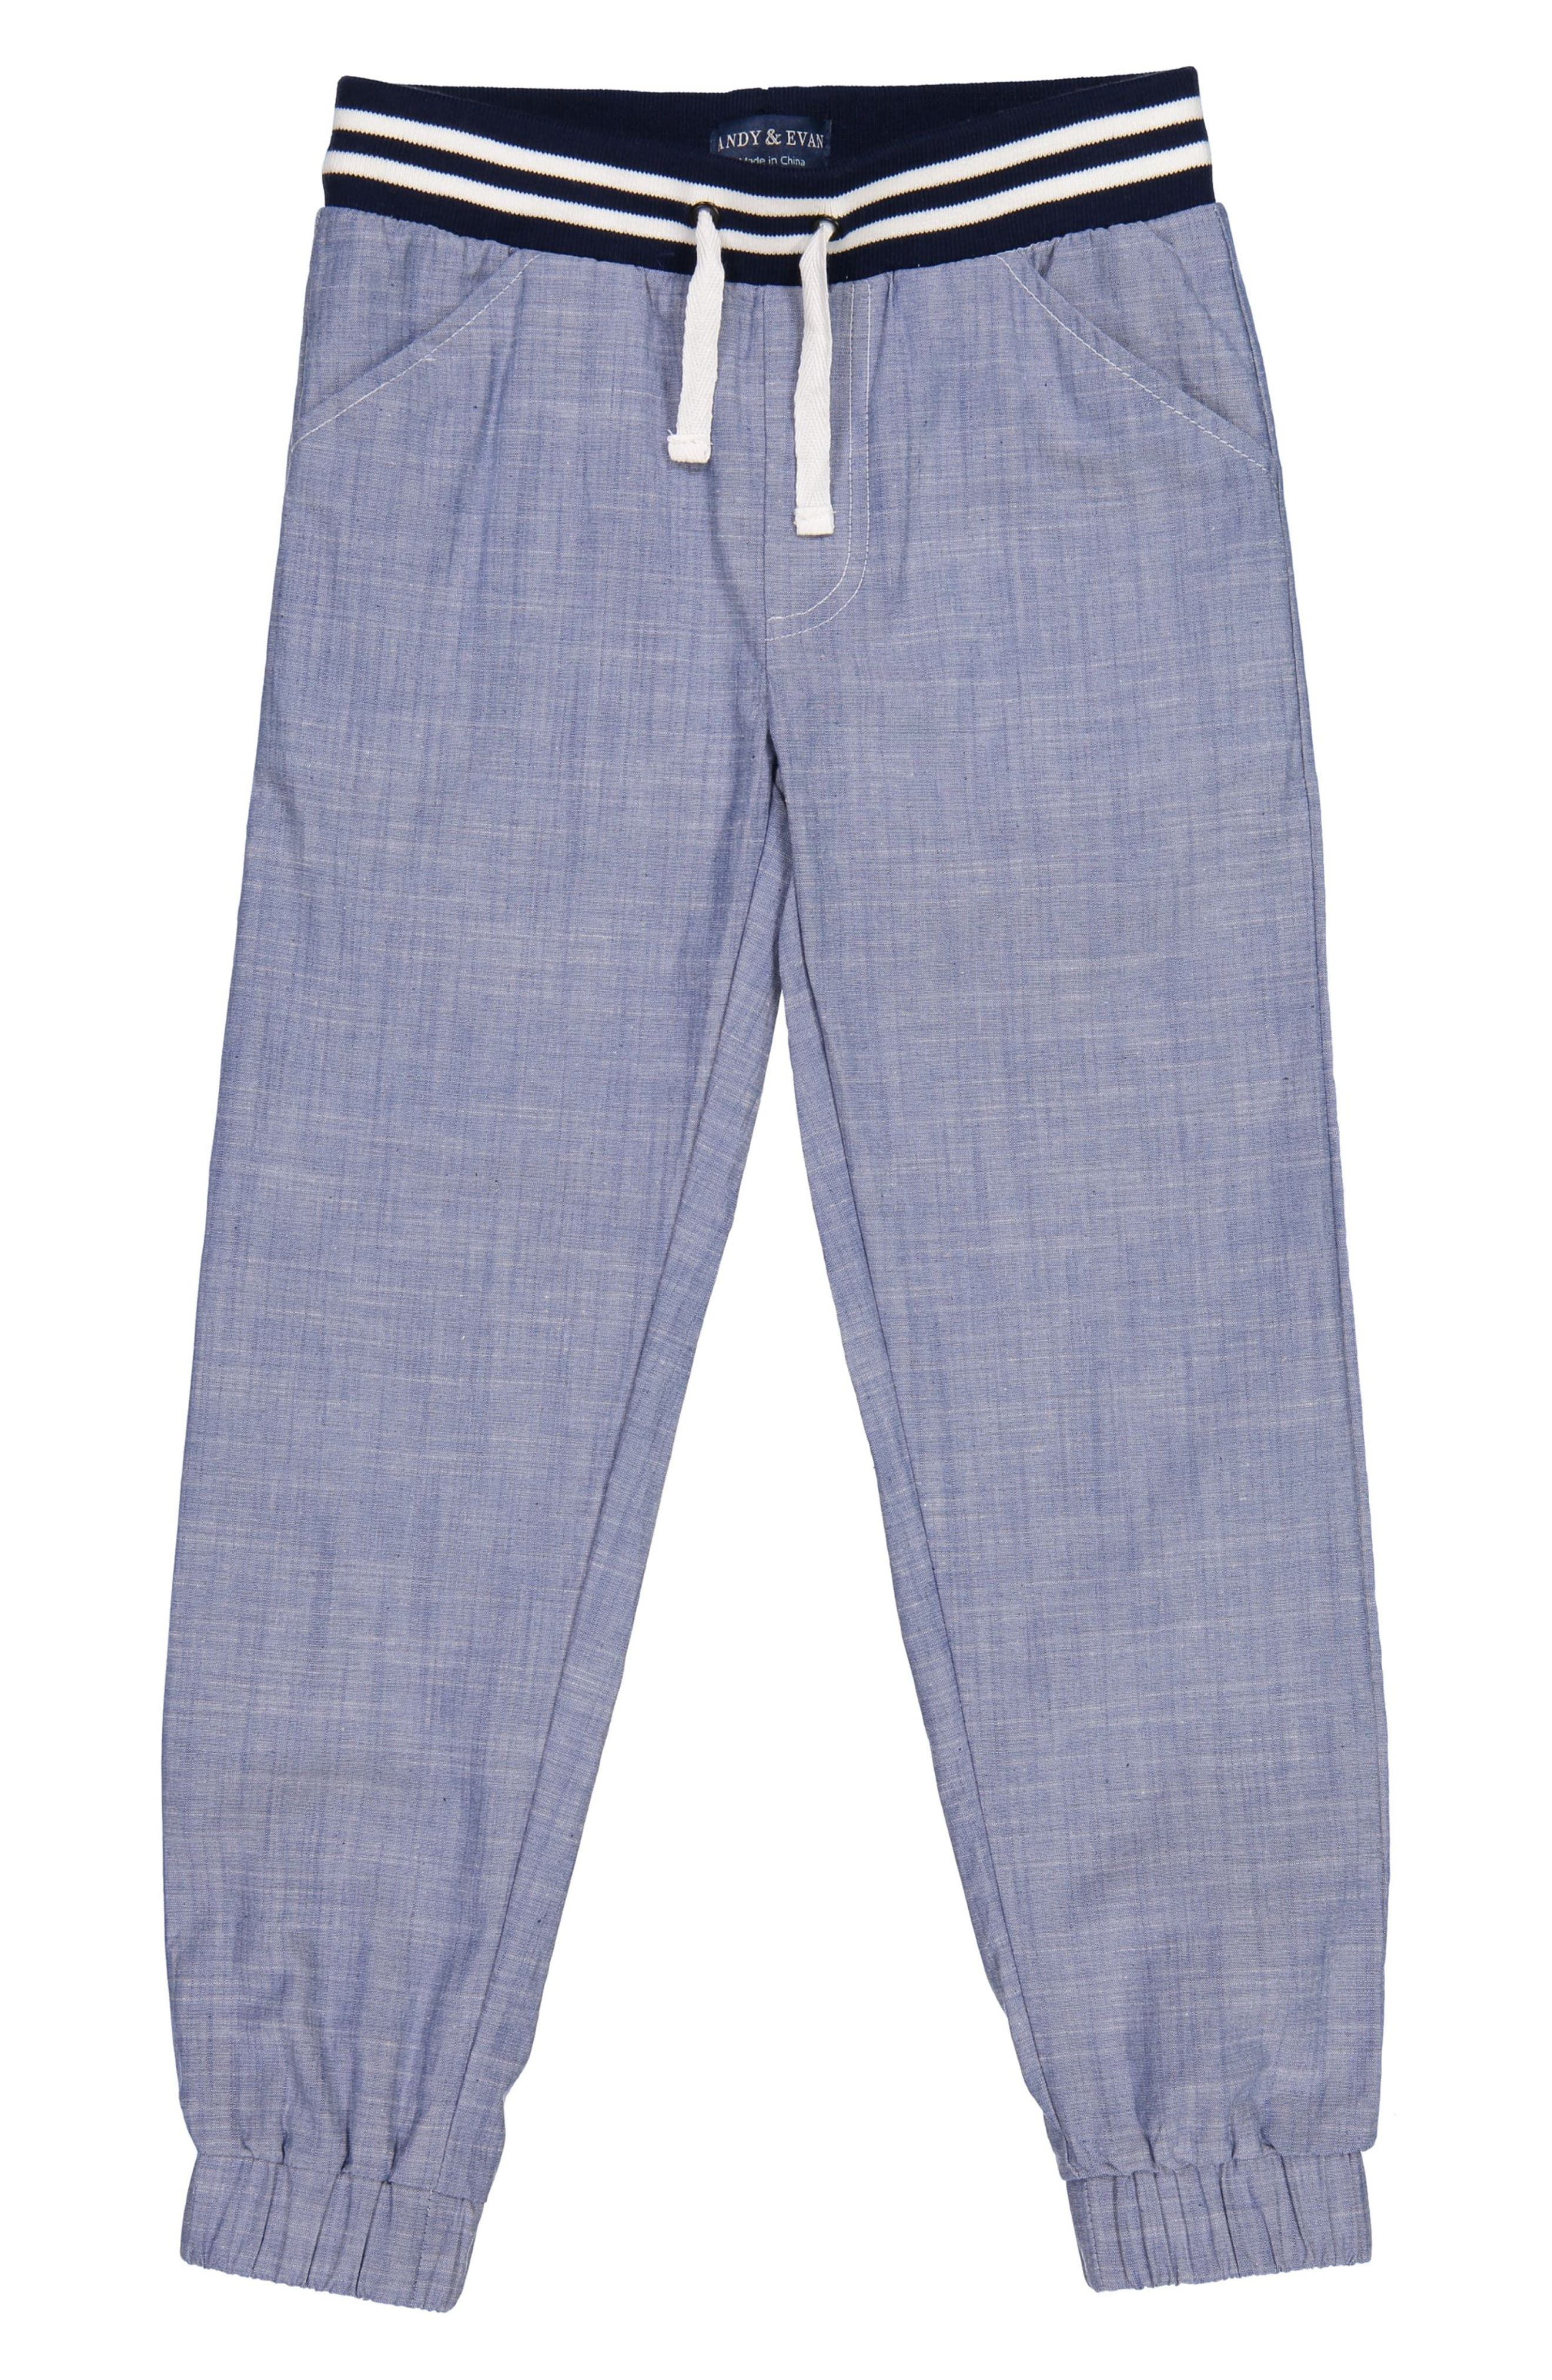 Main Image - Andy & Evan Chambray Jogger Pants (Toddler Boys & Little Boys)